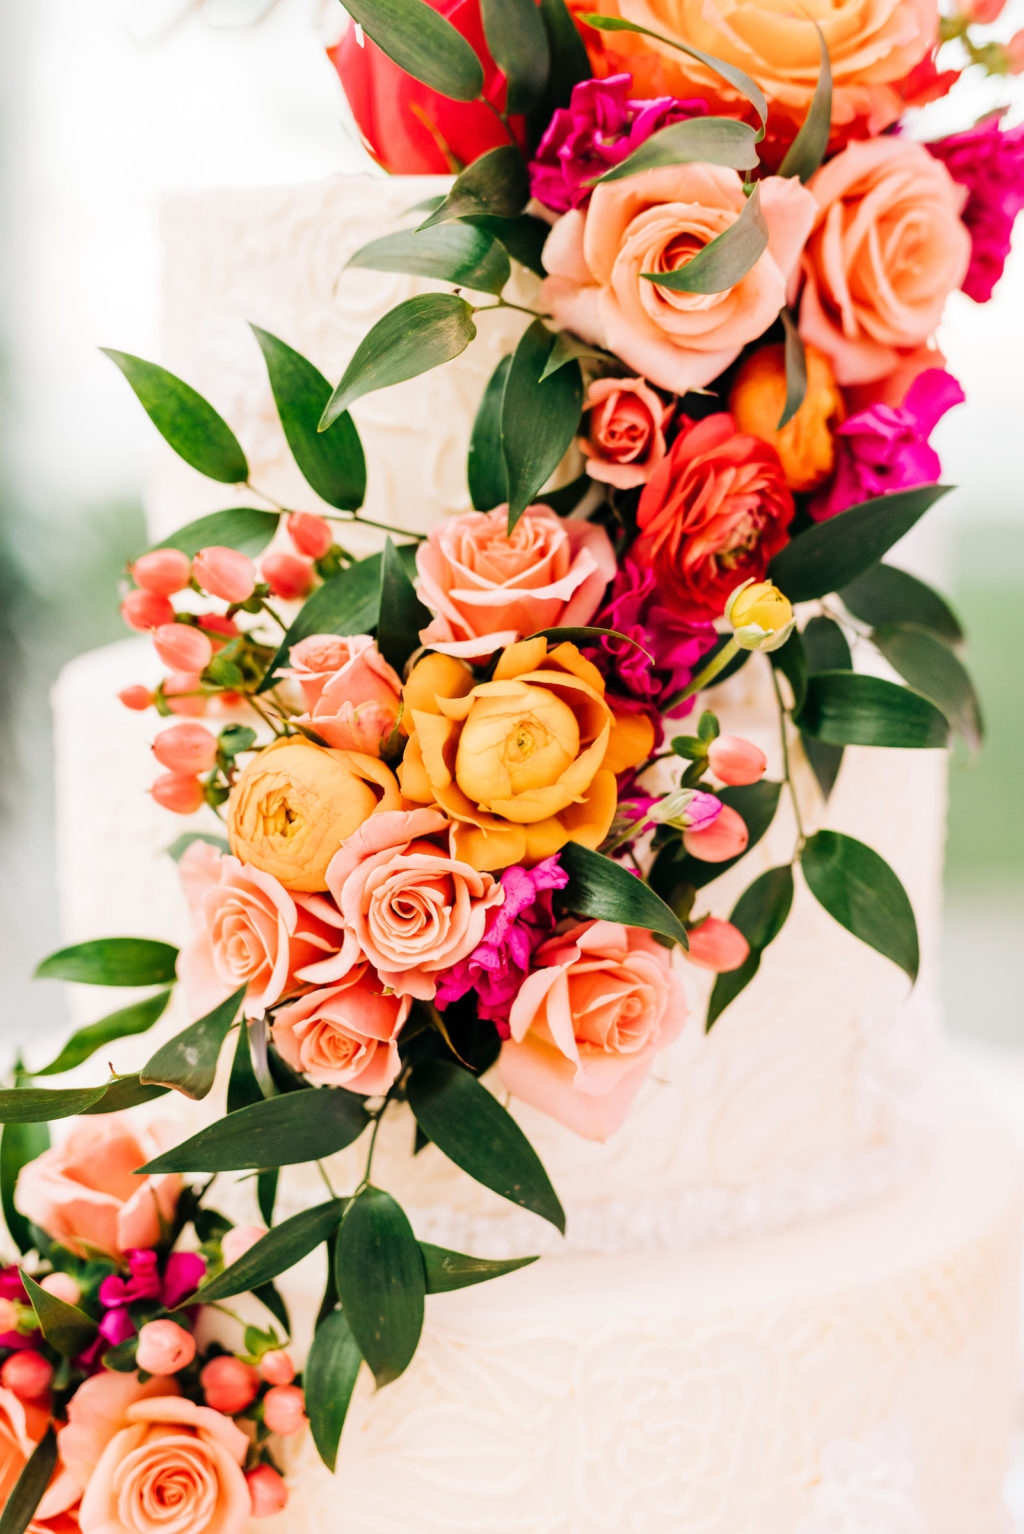 Elegant Three Tier White Wedding Cake with Vibrant Cascading Pink, Orange Roses and Greenery Flowers   Tampa Bay Florist Monarch Events and Design